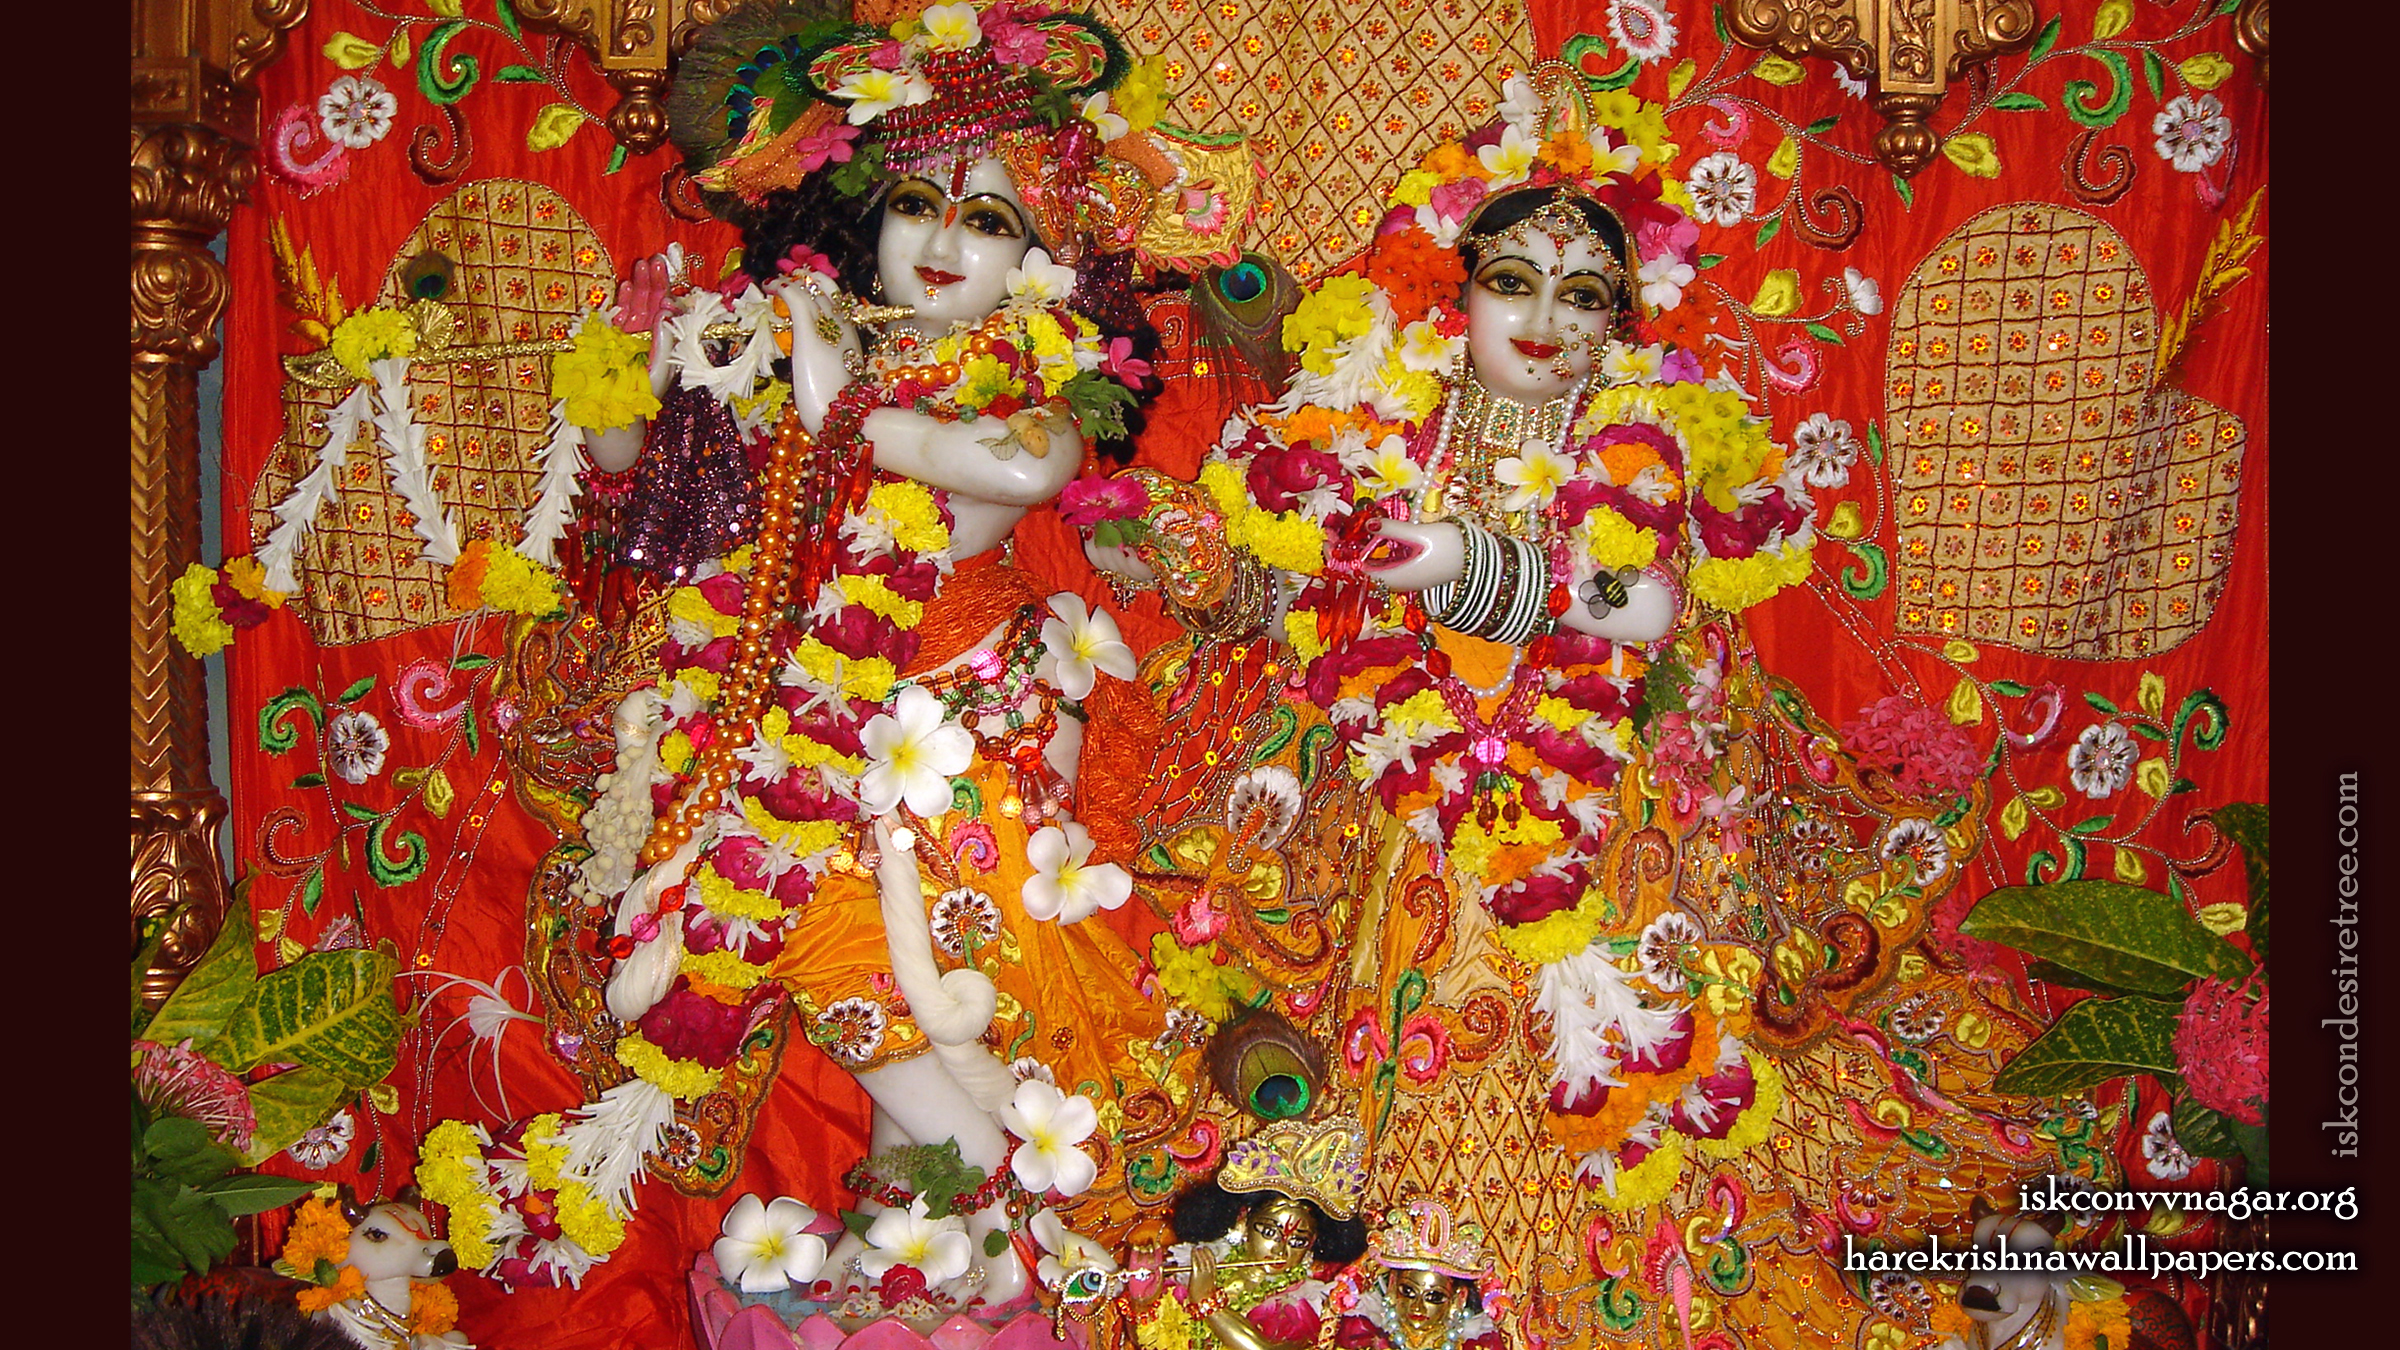 Sri Sri Radha Giridhari Wallpaper (028) Size 2400x1350 Download